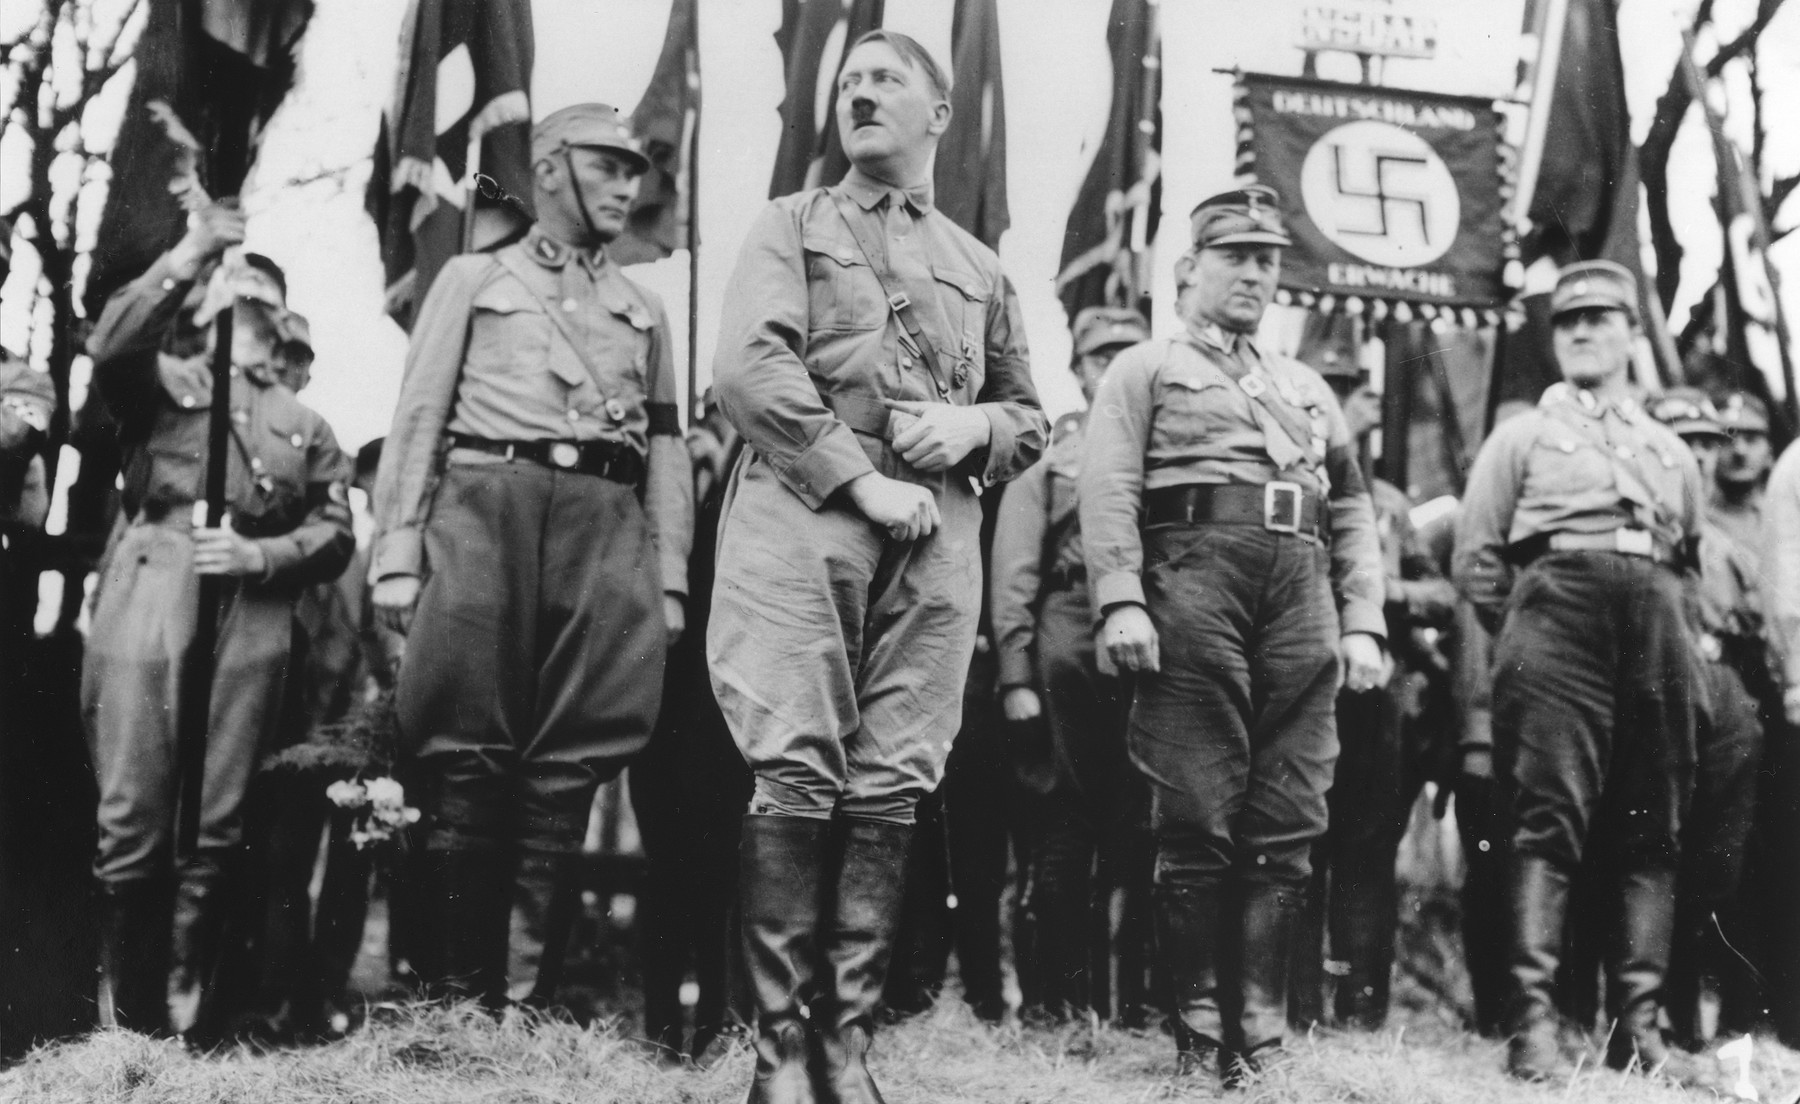 Adolf Hitler stands with an SA unit during a Nazi parade in Weimar